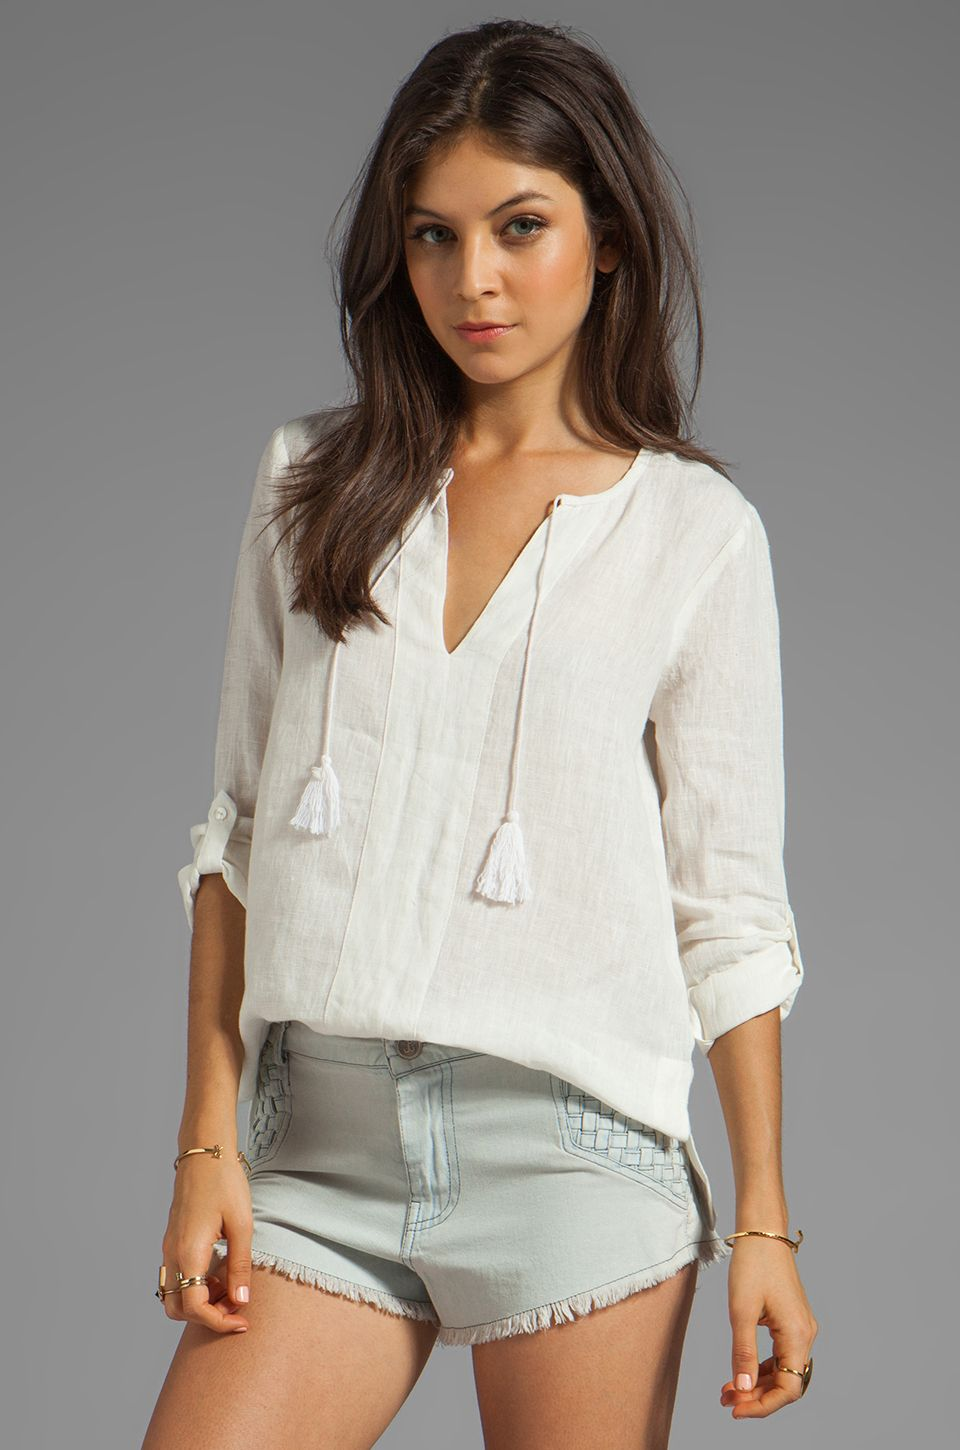 #REVOLVEclothing love this shirt so glad I got it! Cute outfit idea